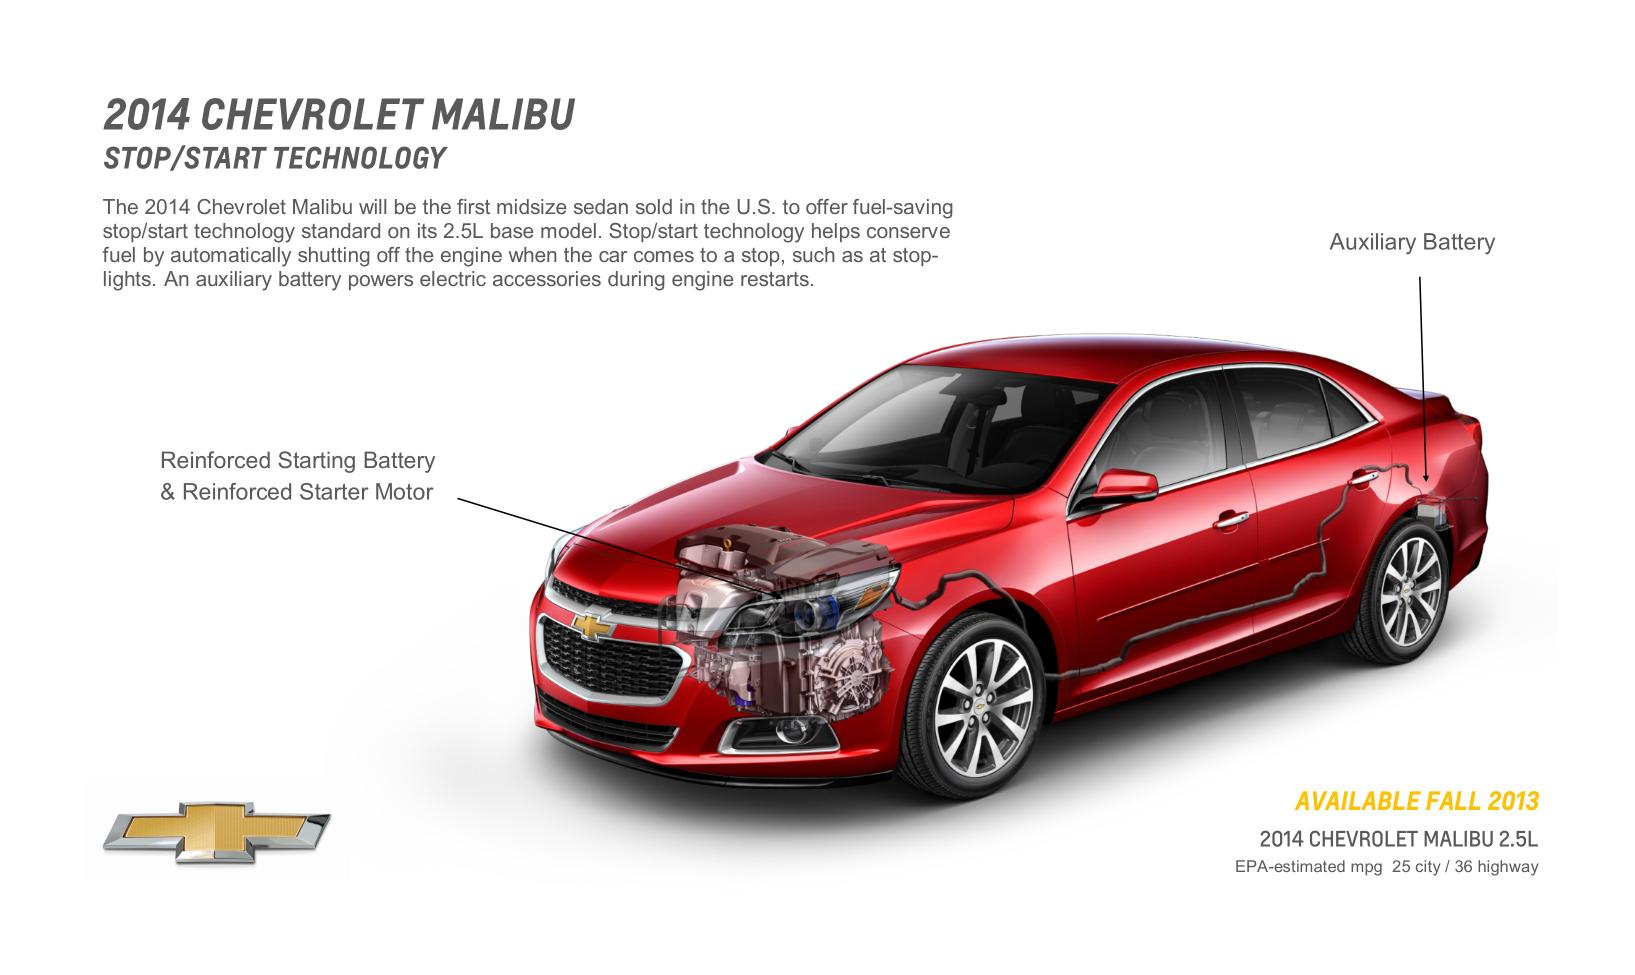 2014 Chevy Malibu With Stop/Start Gets 14% Better City ...